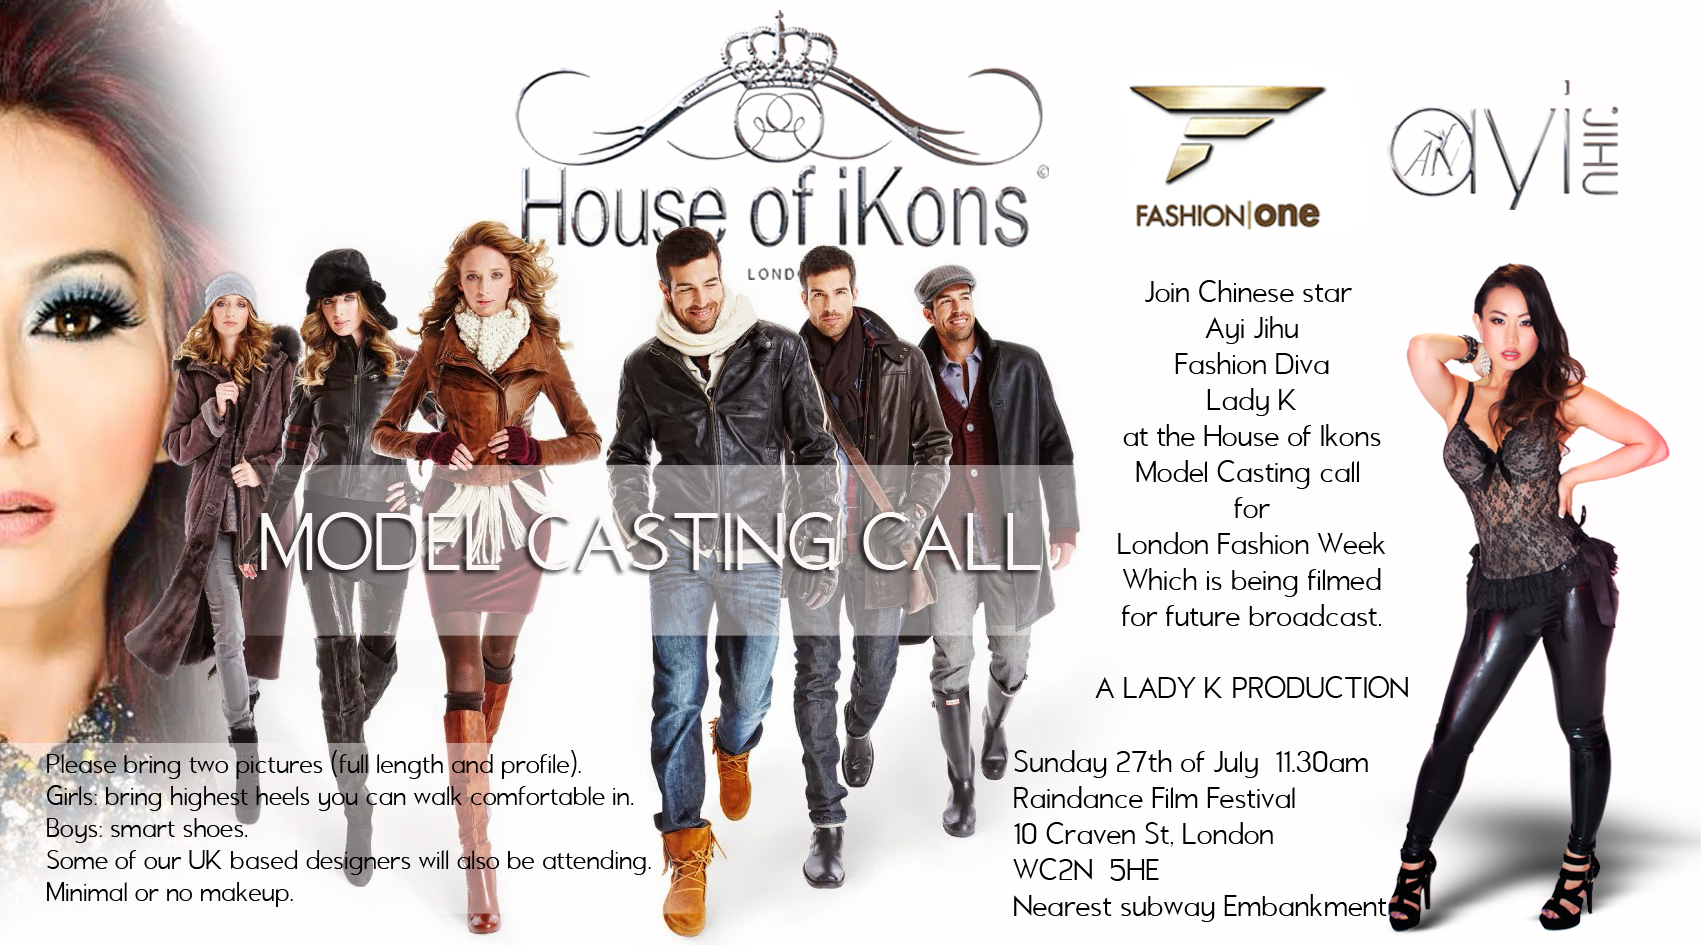 House-of-ikons-casting-call-poster-1.jpg